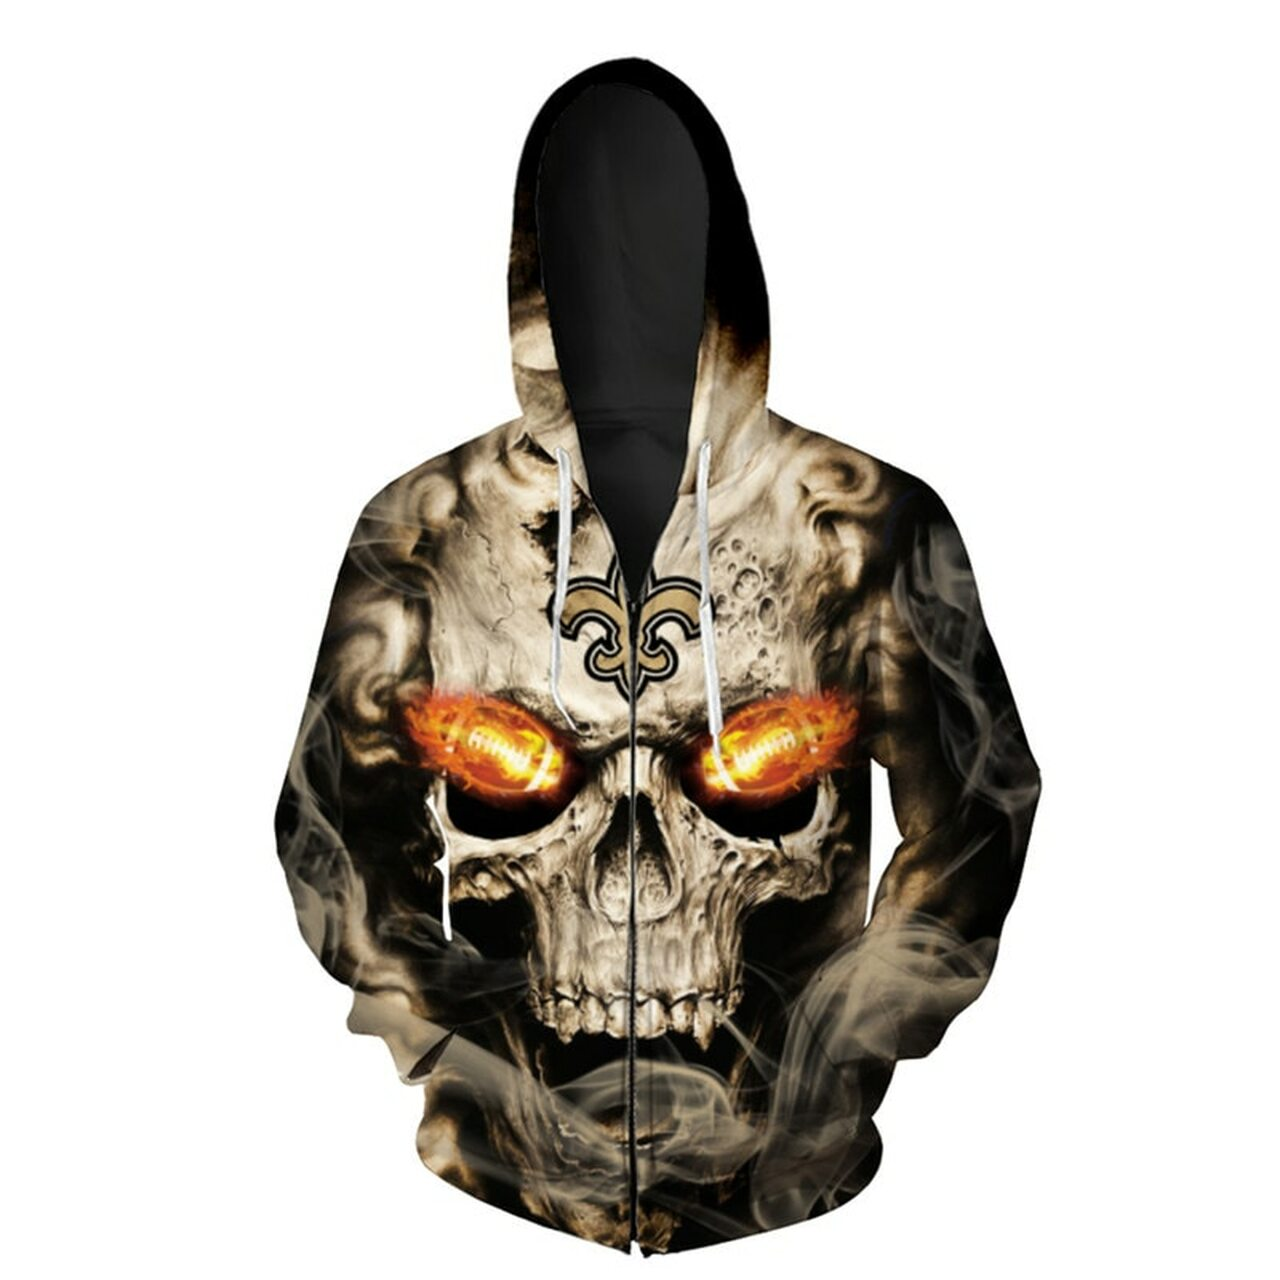 outlet store 44791 f6ff5 **(OFFICIAL-N.F.L.NEW-ORLEANS-SAINTS-LOGO-ZIPPERED-HOODIES/3D-NEON-SKULL &  NEW-ORLEANS-SAINTS-BLAZING-FOOTBALL,ON-FIRE-IN-SKULLS-EYES,PREMIUM-3D-CUSTO...